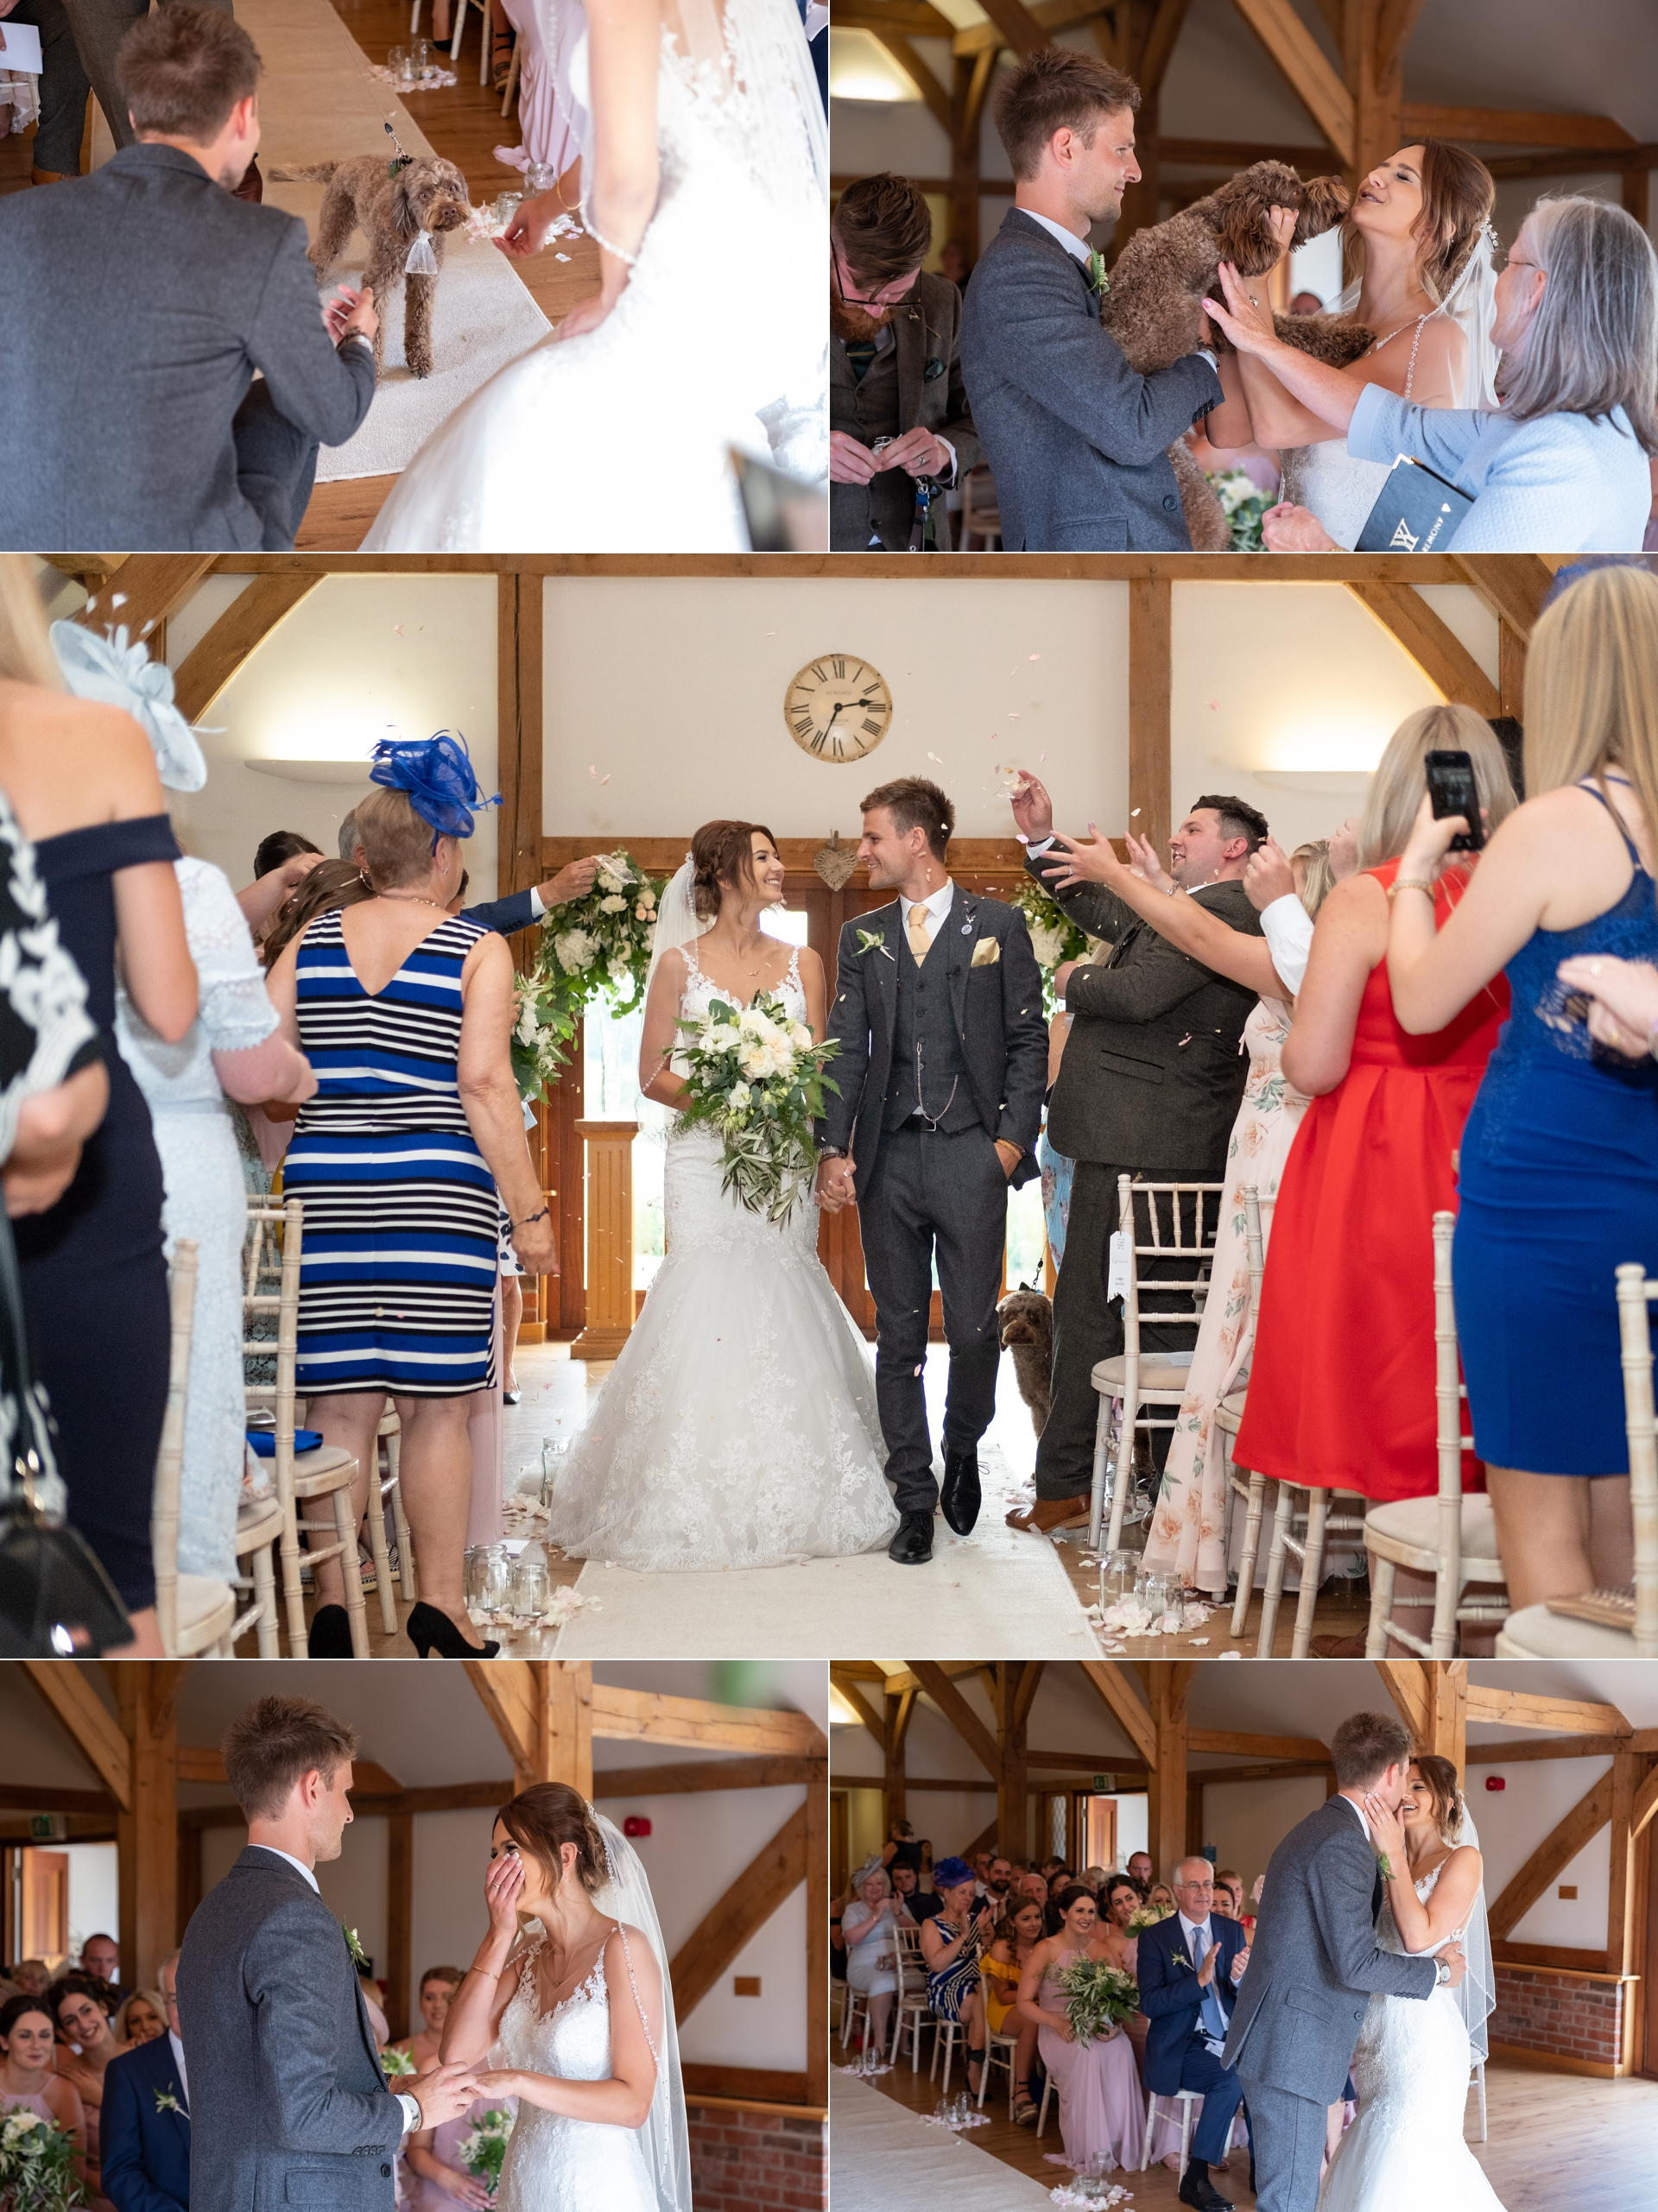 wedding photo sandhole oak barn 7.jpg